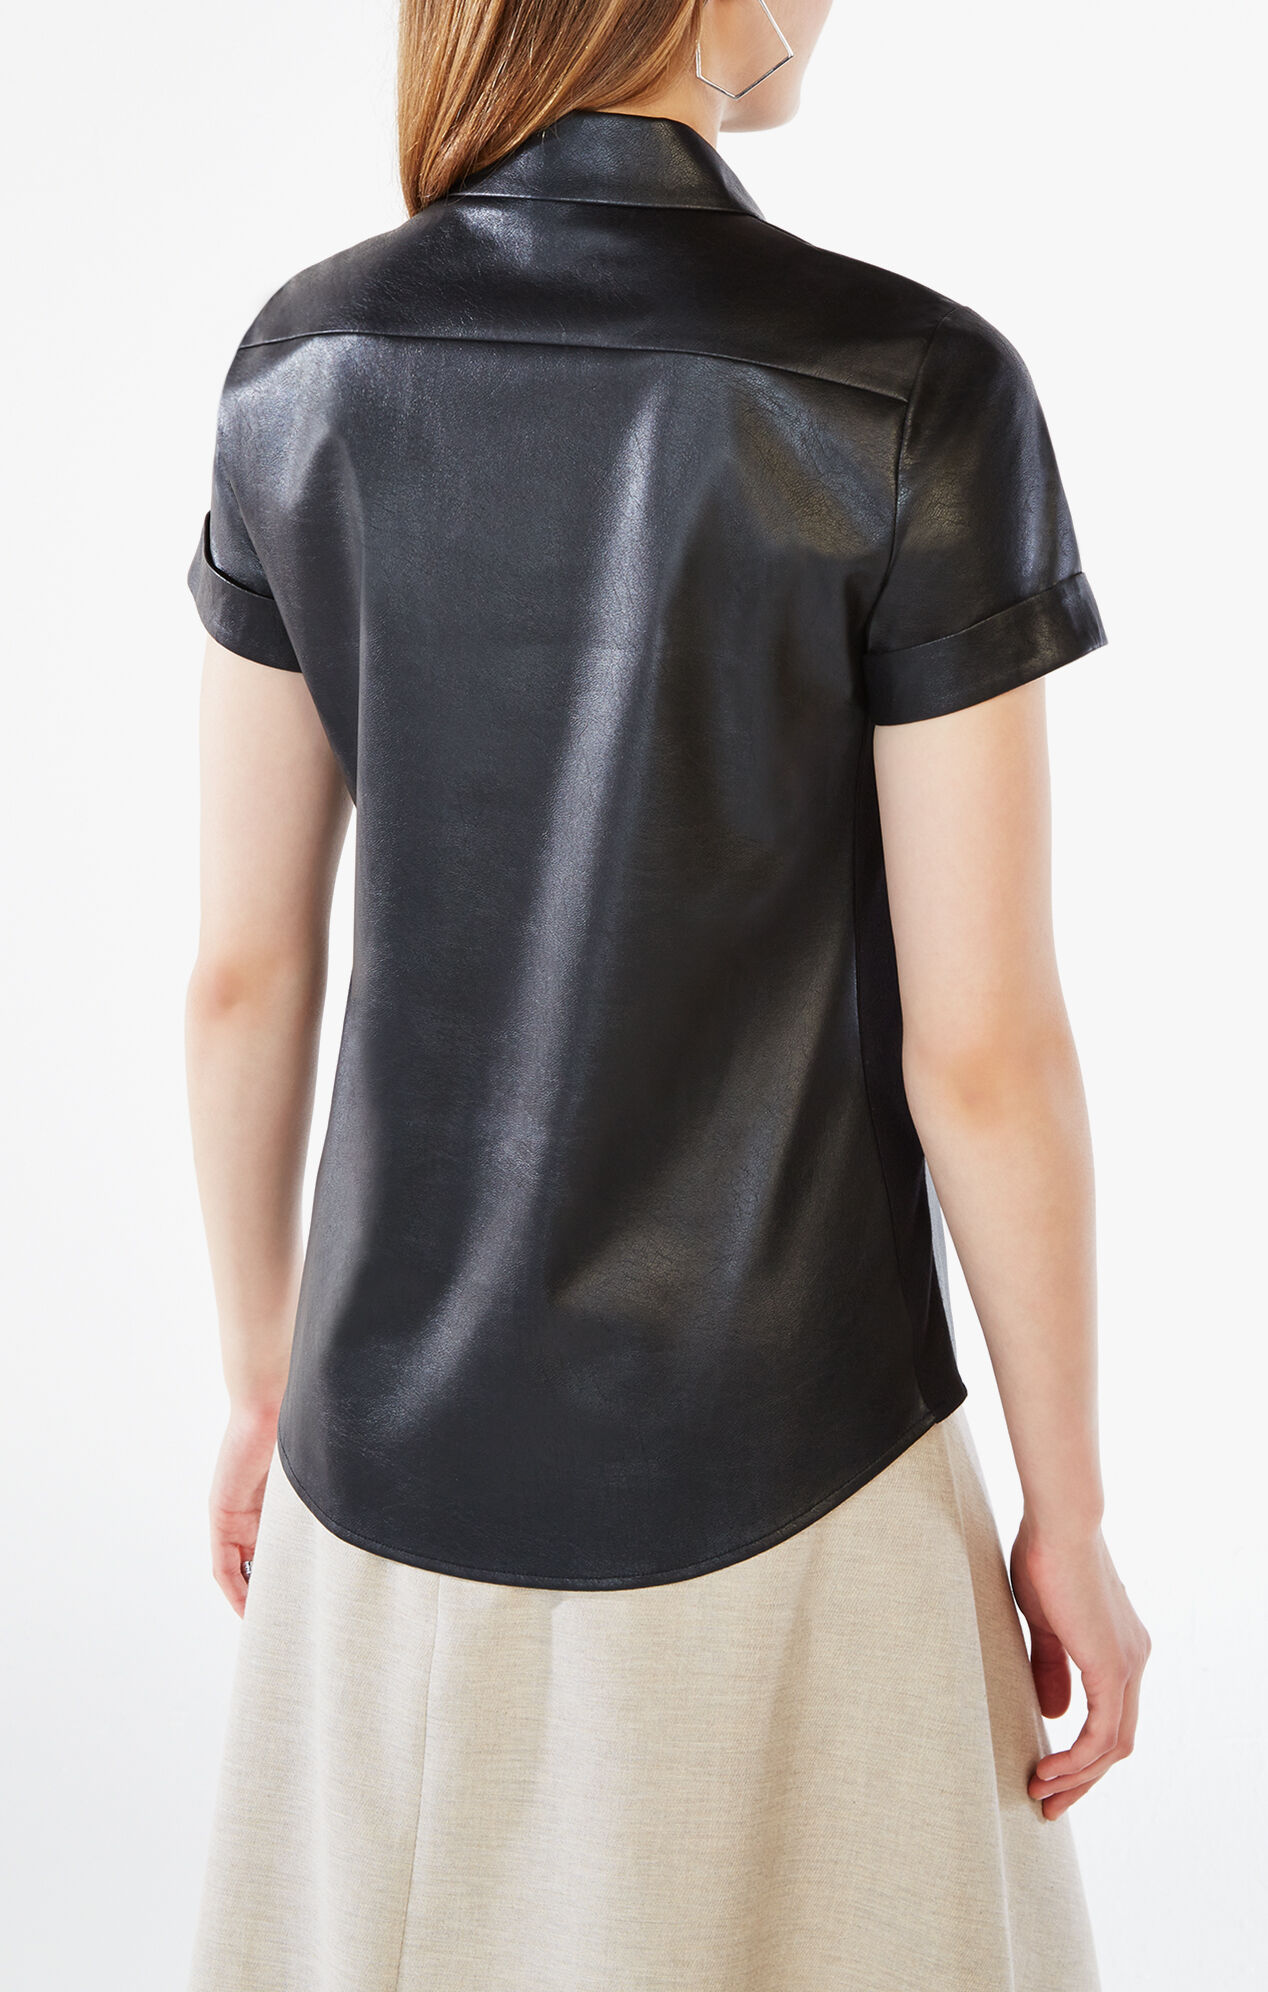 Find the best selection of cheap leather shirt in bulk here at sashimicraft.ga Including child suspender shirt and musical shirts at wholesale prices from leather shirt manufacturers. Source discount and high quality products in hundreds of categories wholesale direct from China.